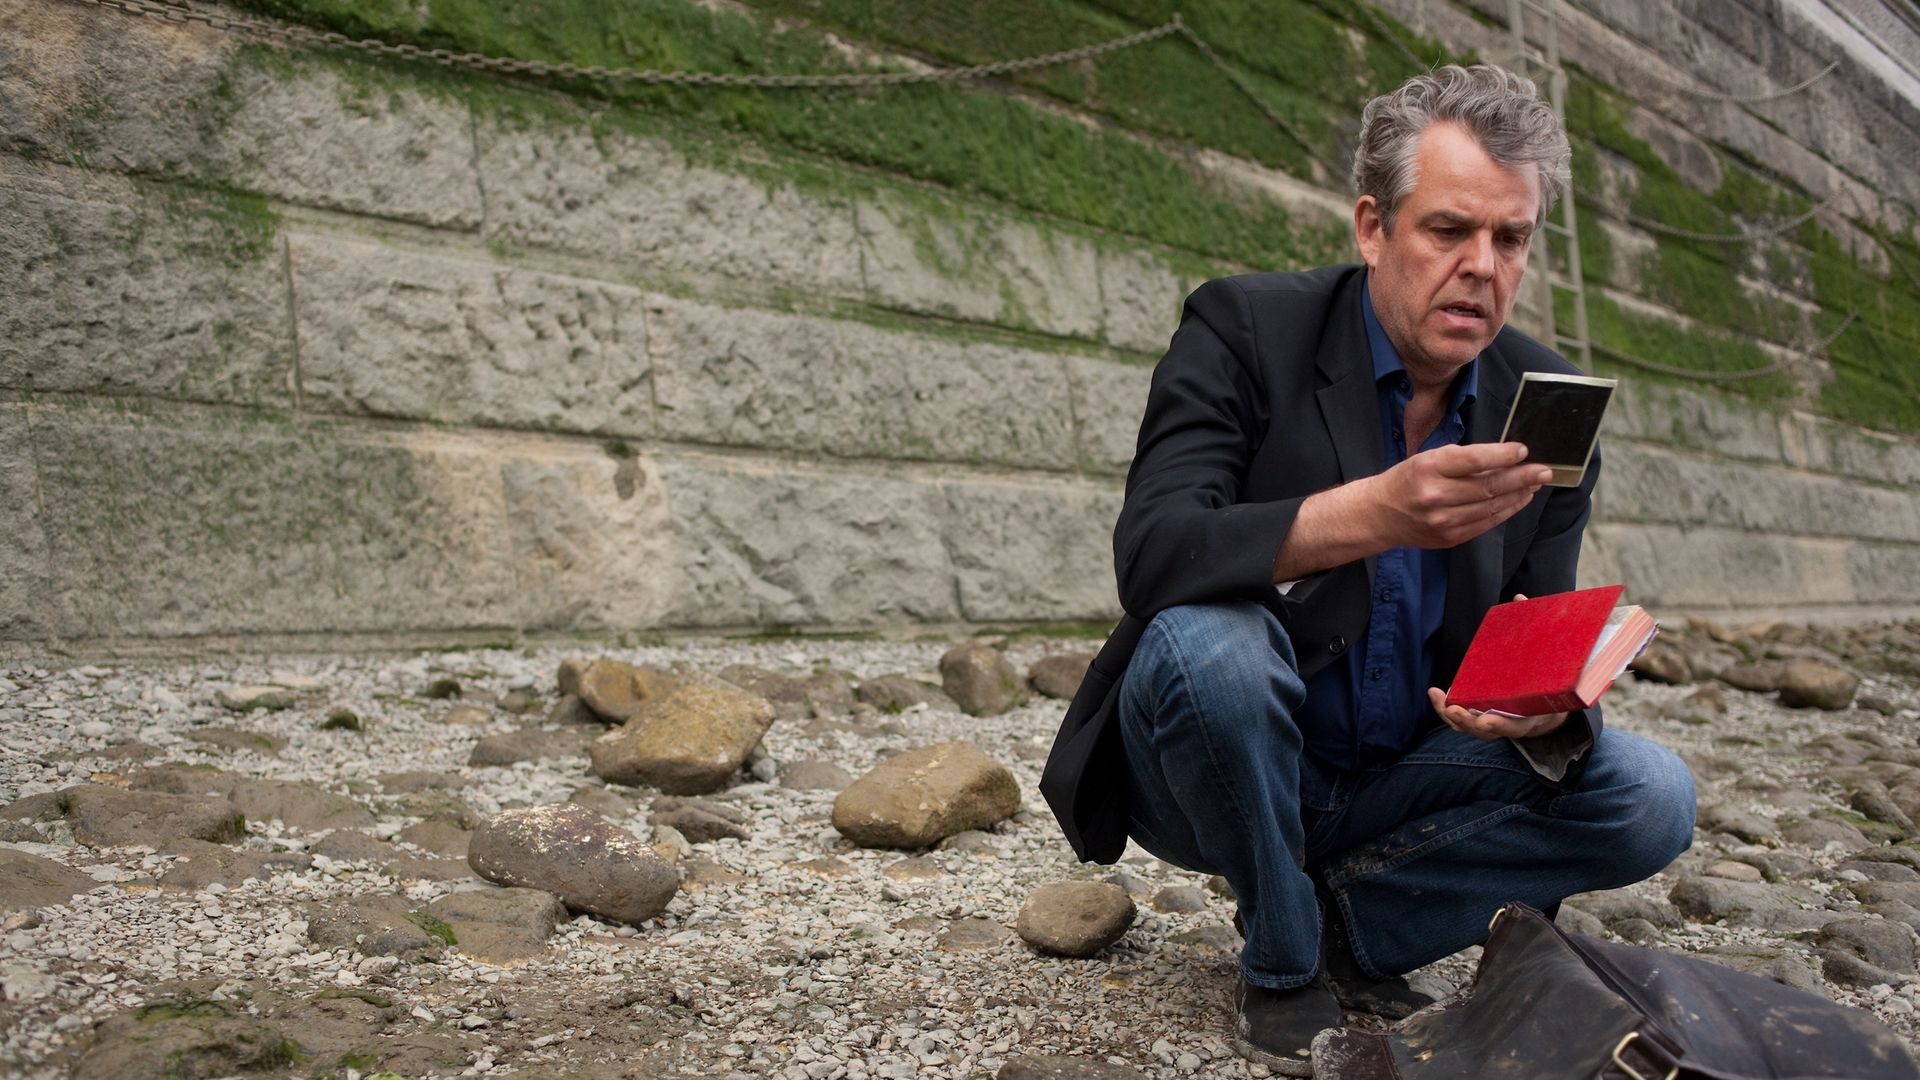 Danny Huston in The Last Photograph - Credit: Photograph: Phil Miller